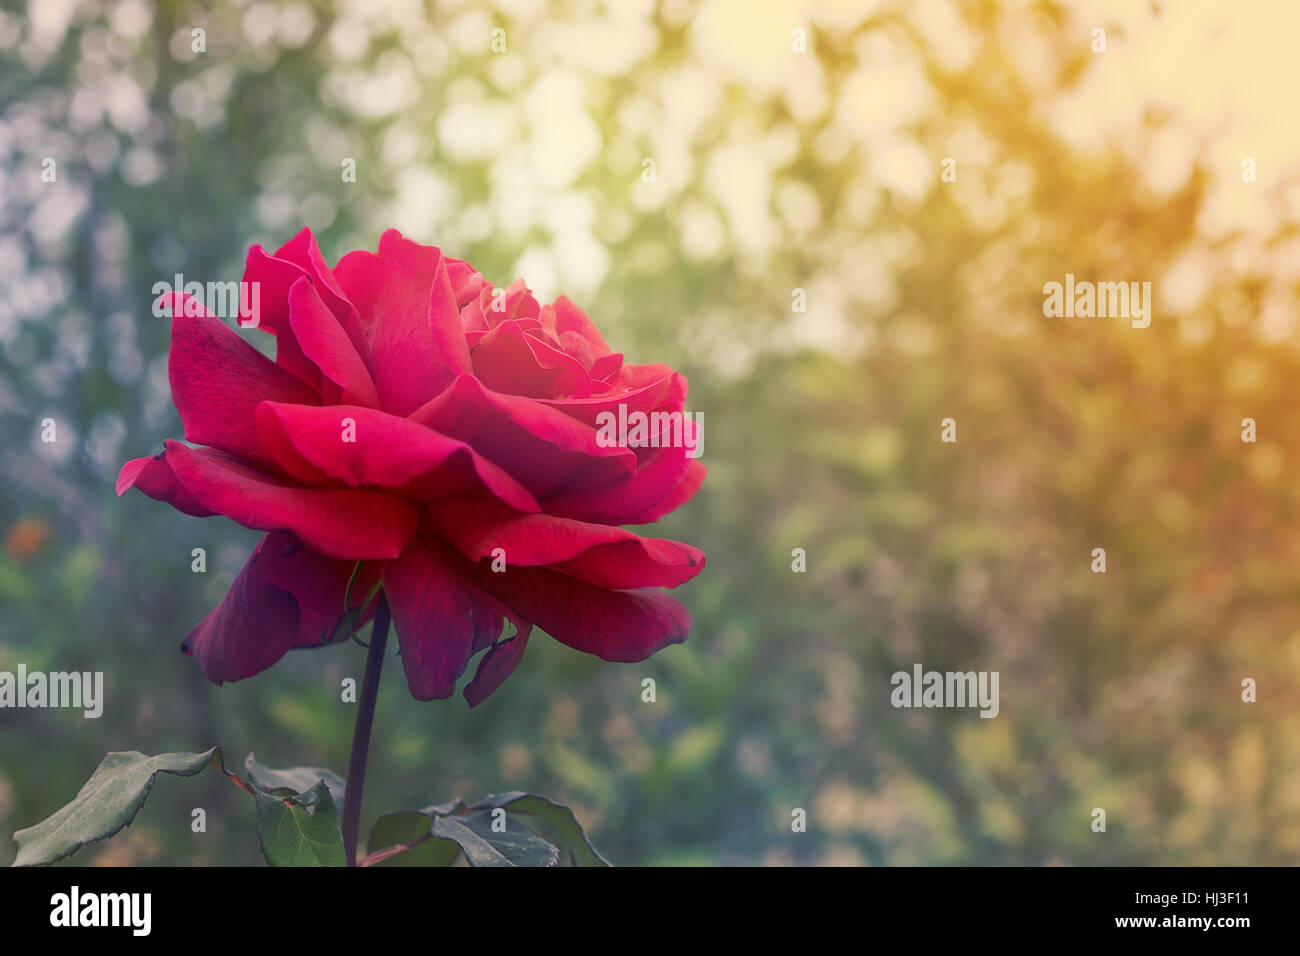 Condolence card stock photos condolence card stock images alamy red rose flower on condolences background for sympathy greeting card for death funeral or tragedy kristyandbryce Choice Image